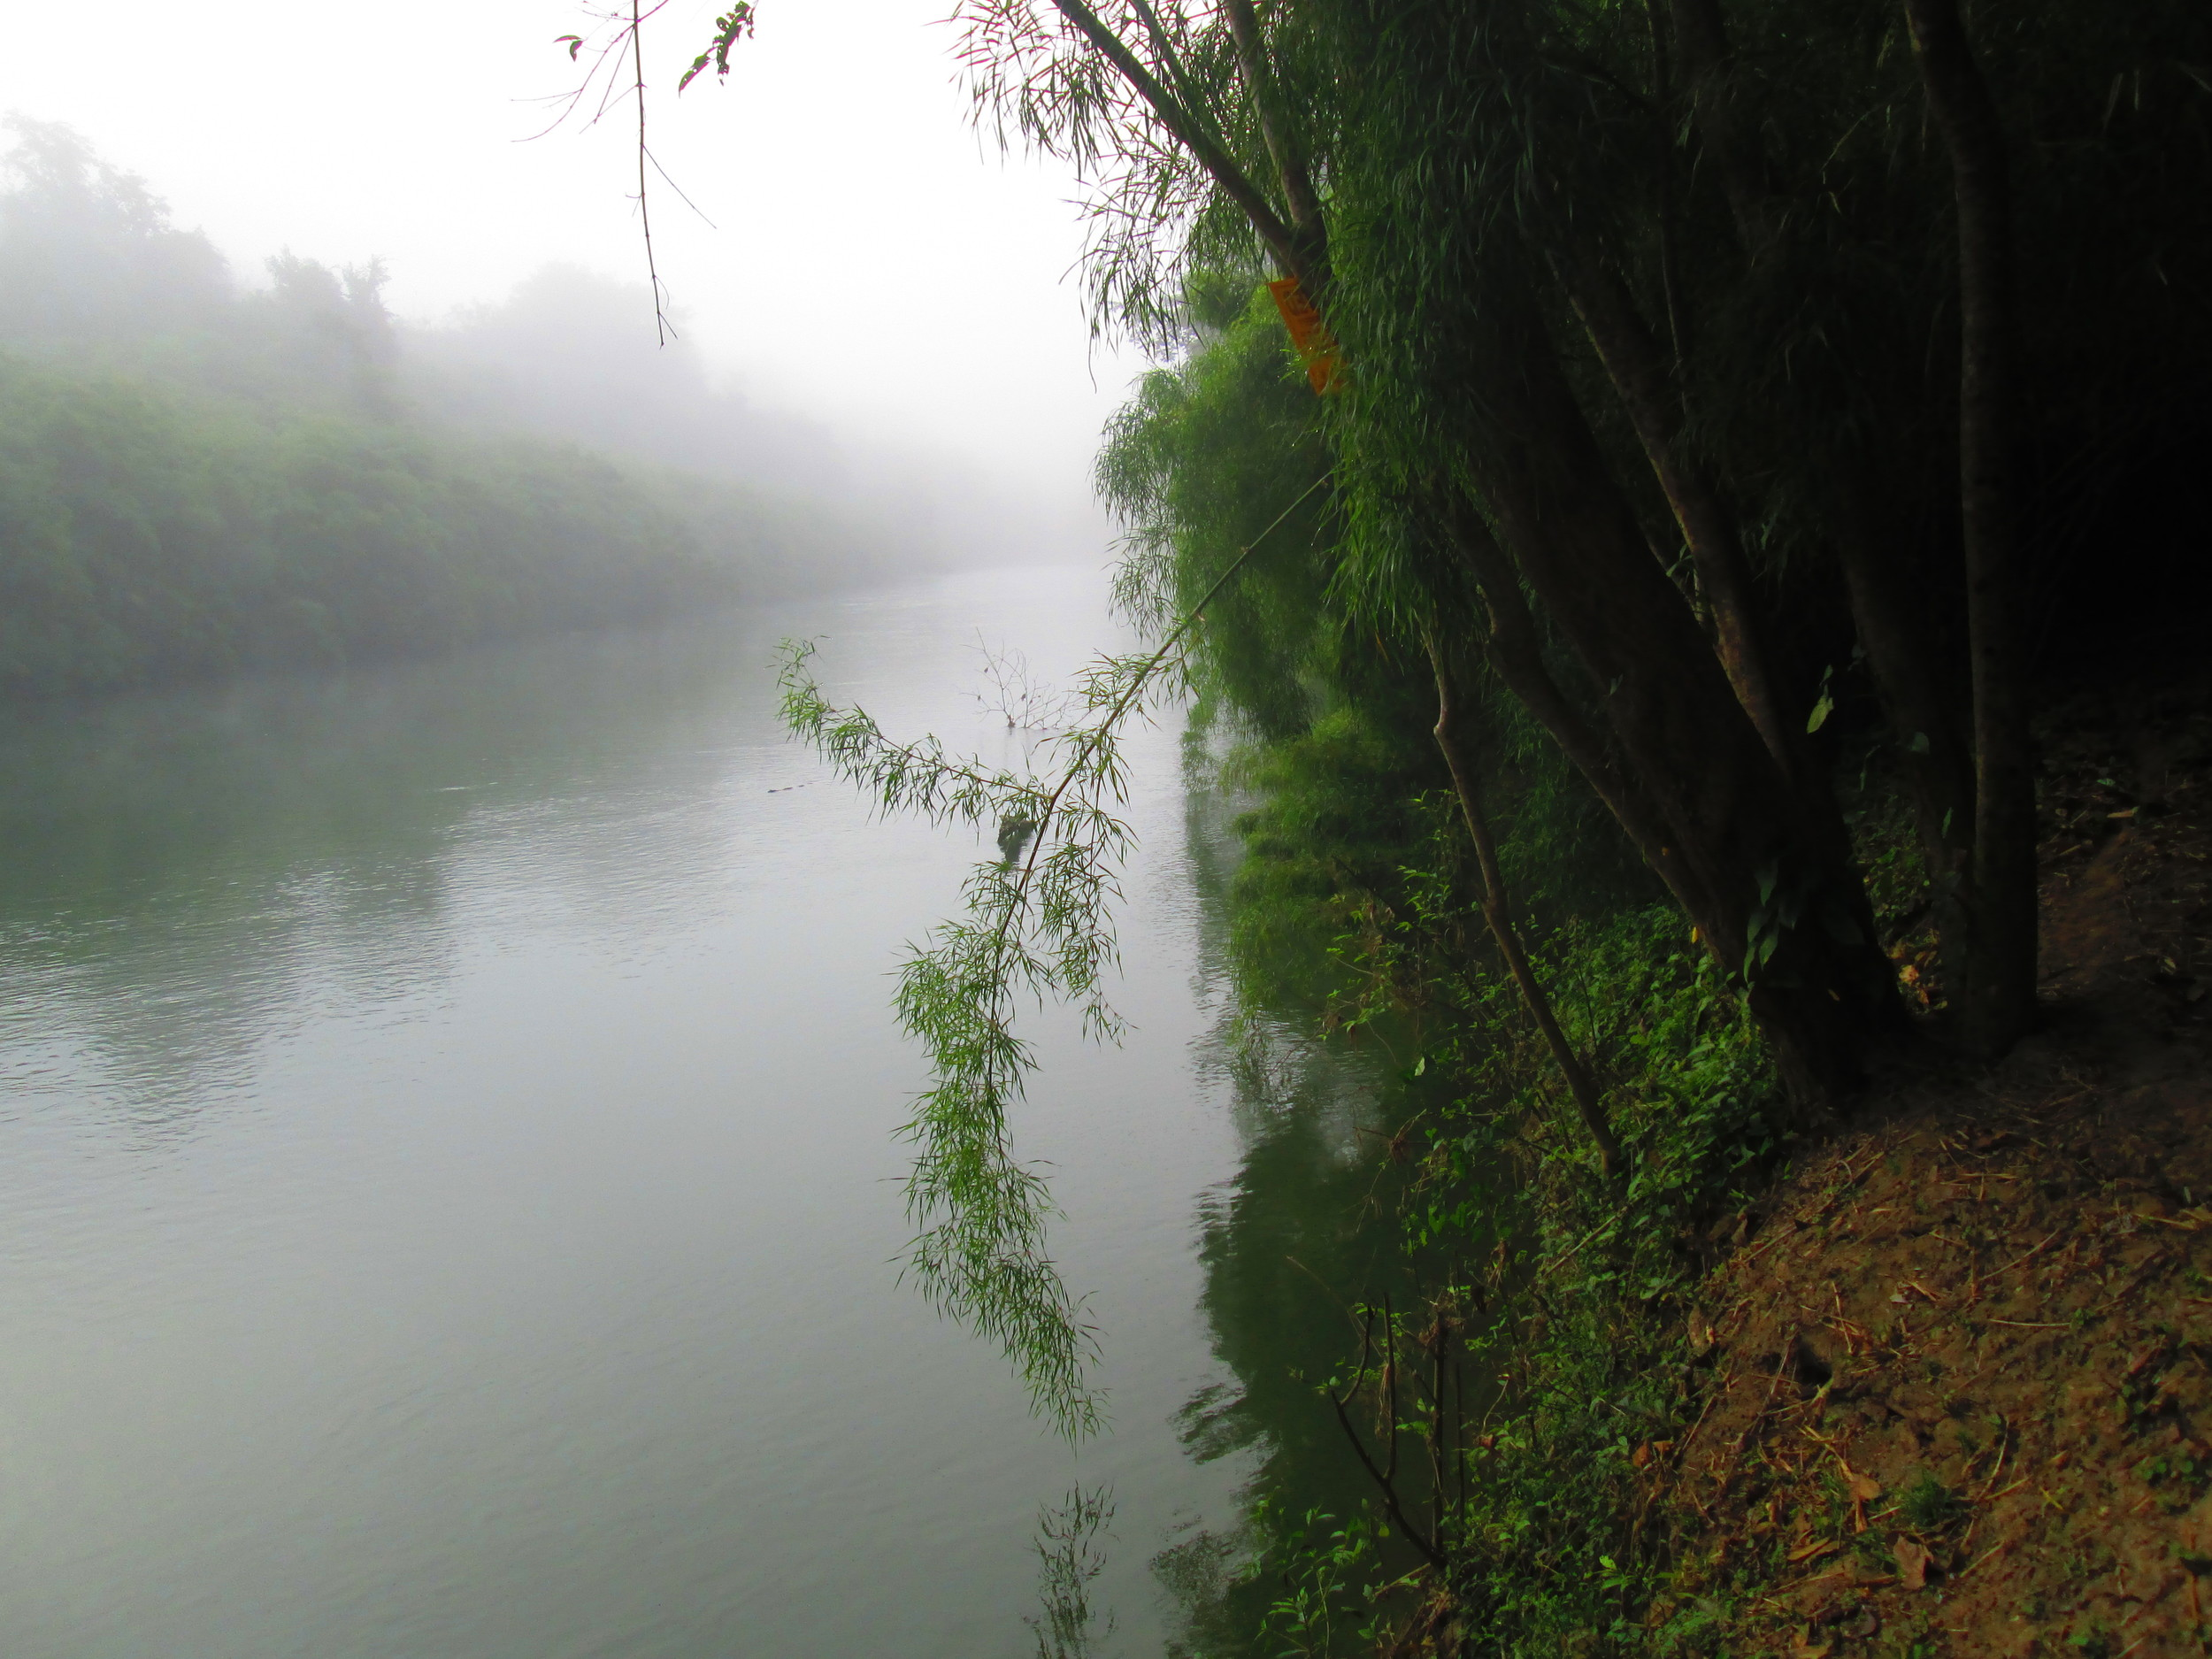 Belize River Bank Misty.JPG